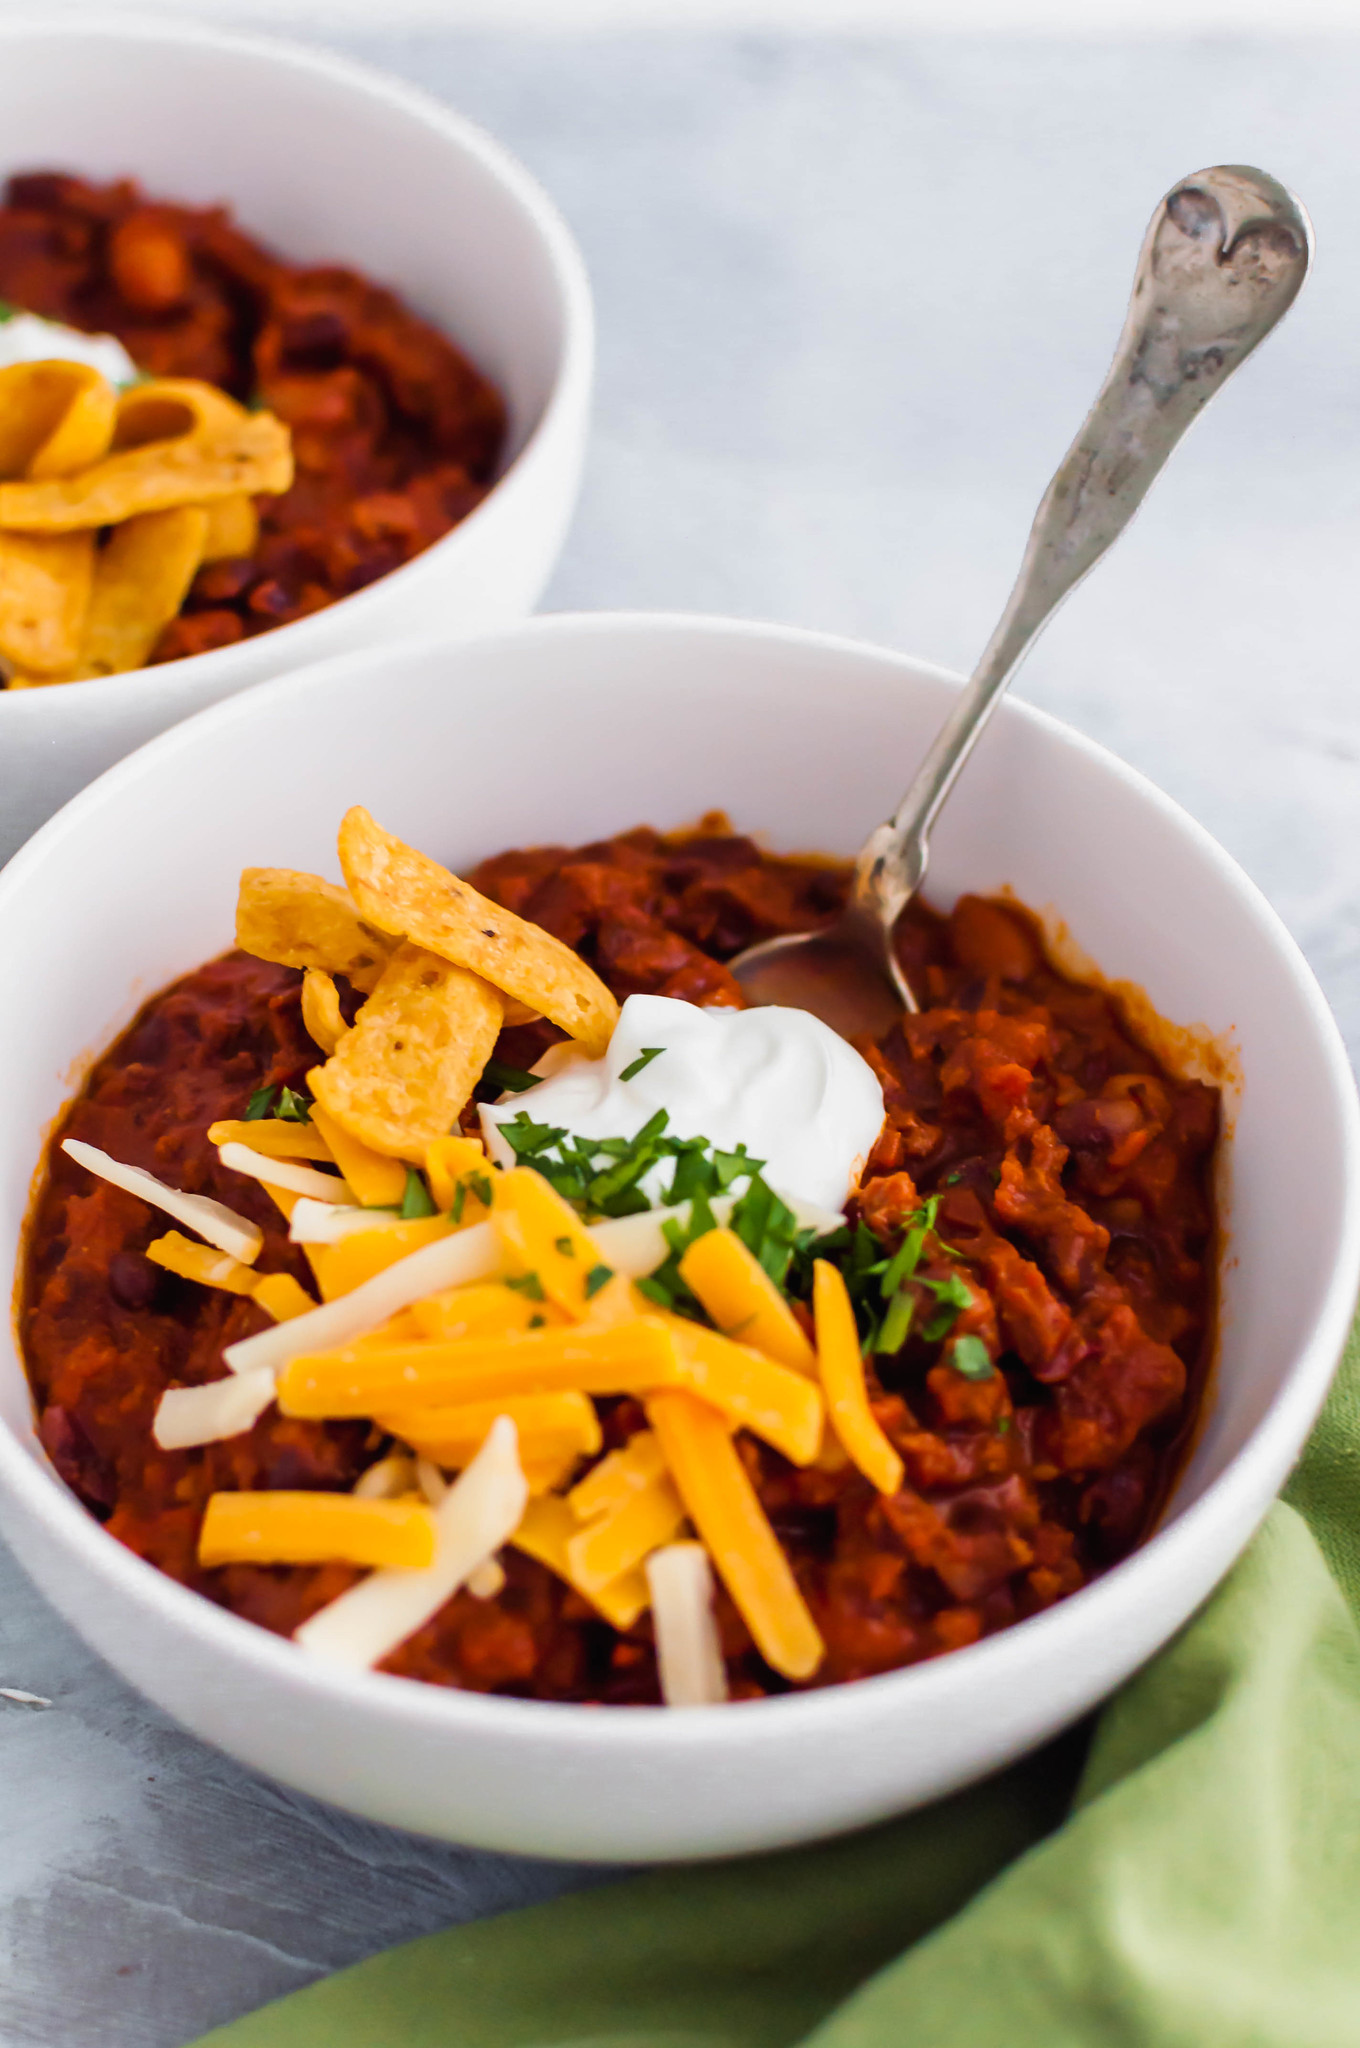 Chili season is upon us and this Chipotle Chili is my favorite. It's the perfect amount of hearty, smoky and spicy all in one bowl.